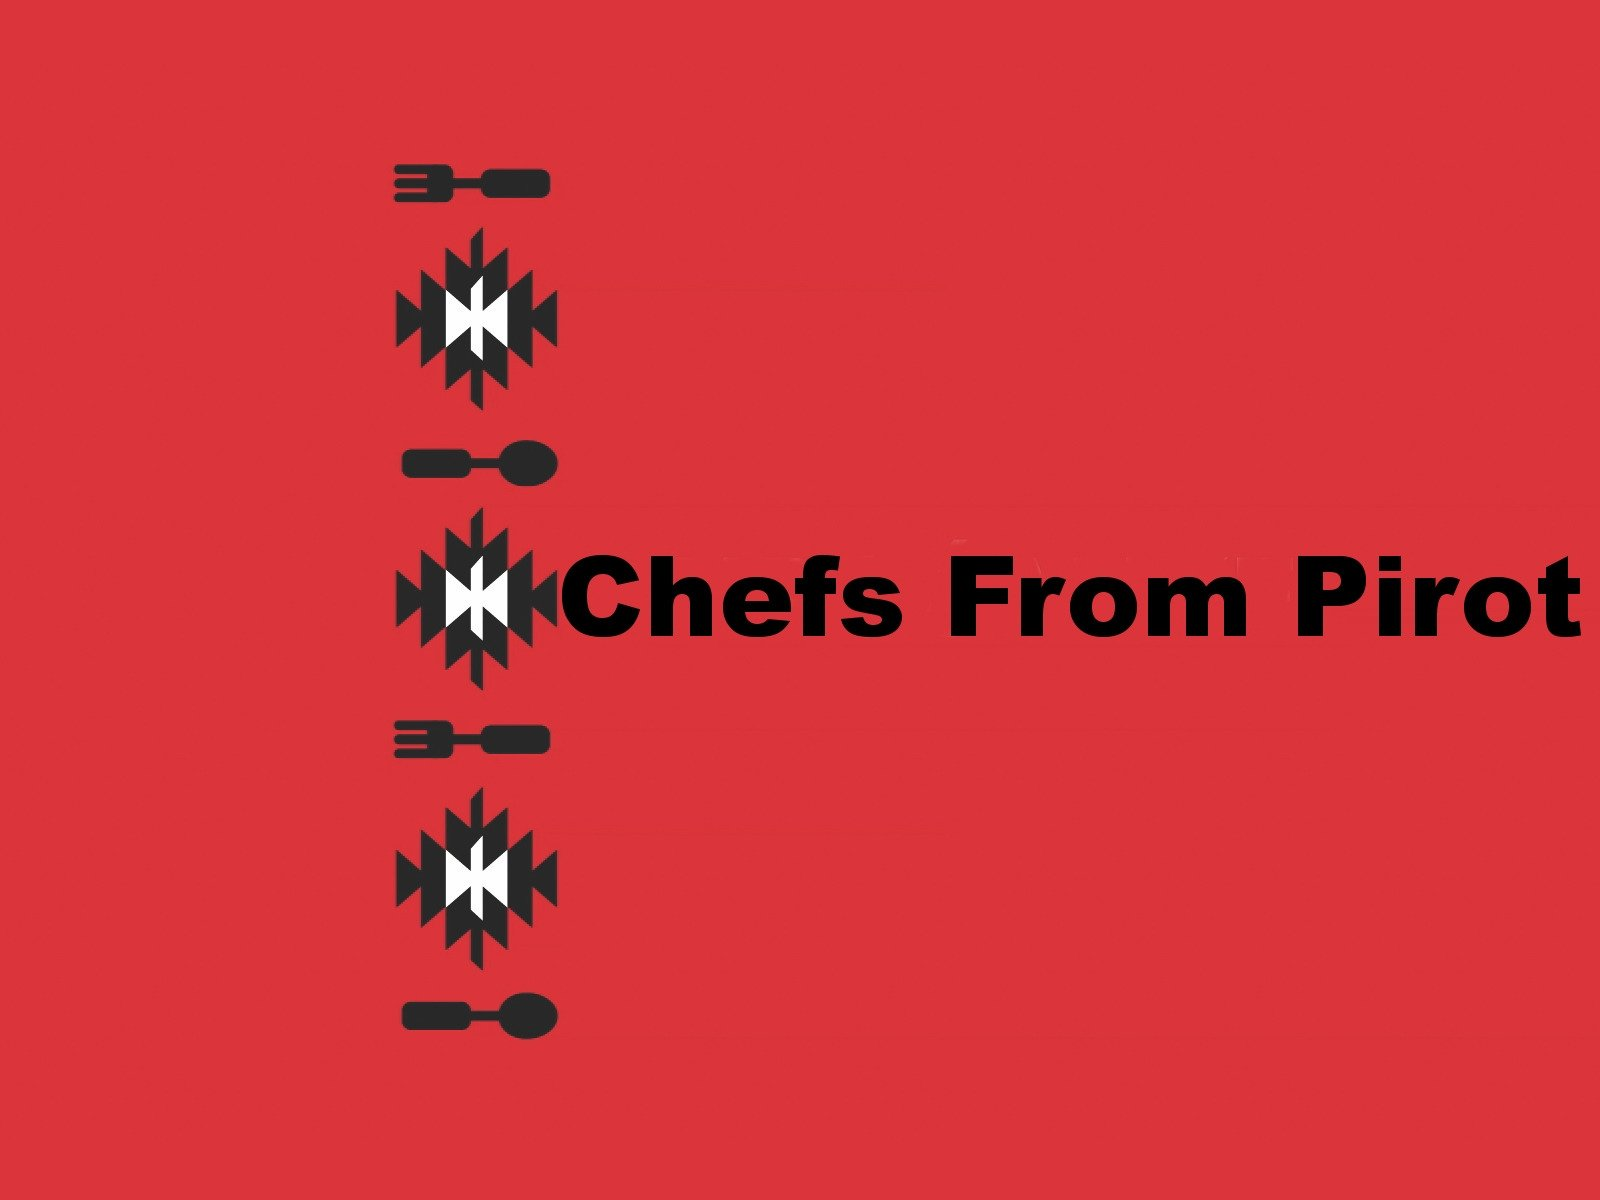 Chefs From Pirot - Season 1